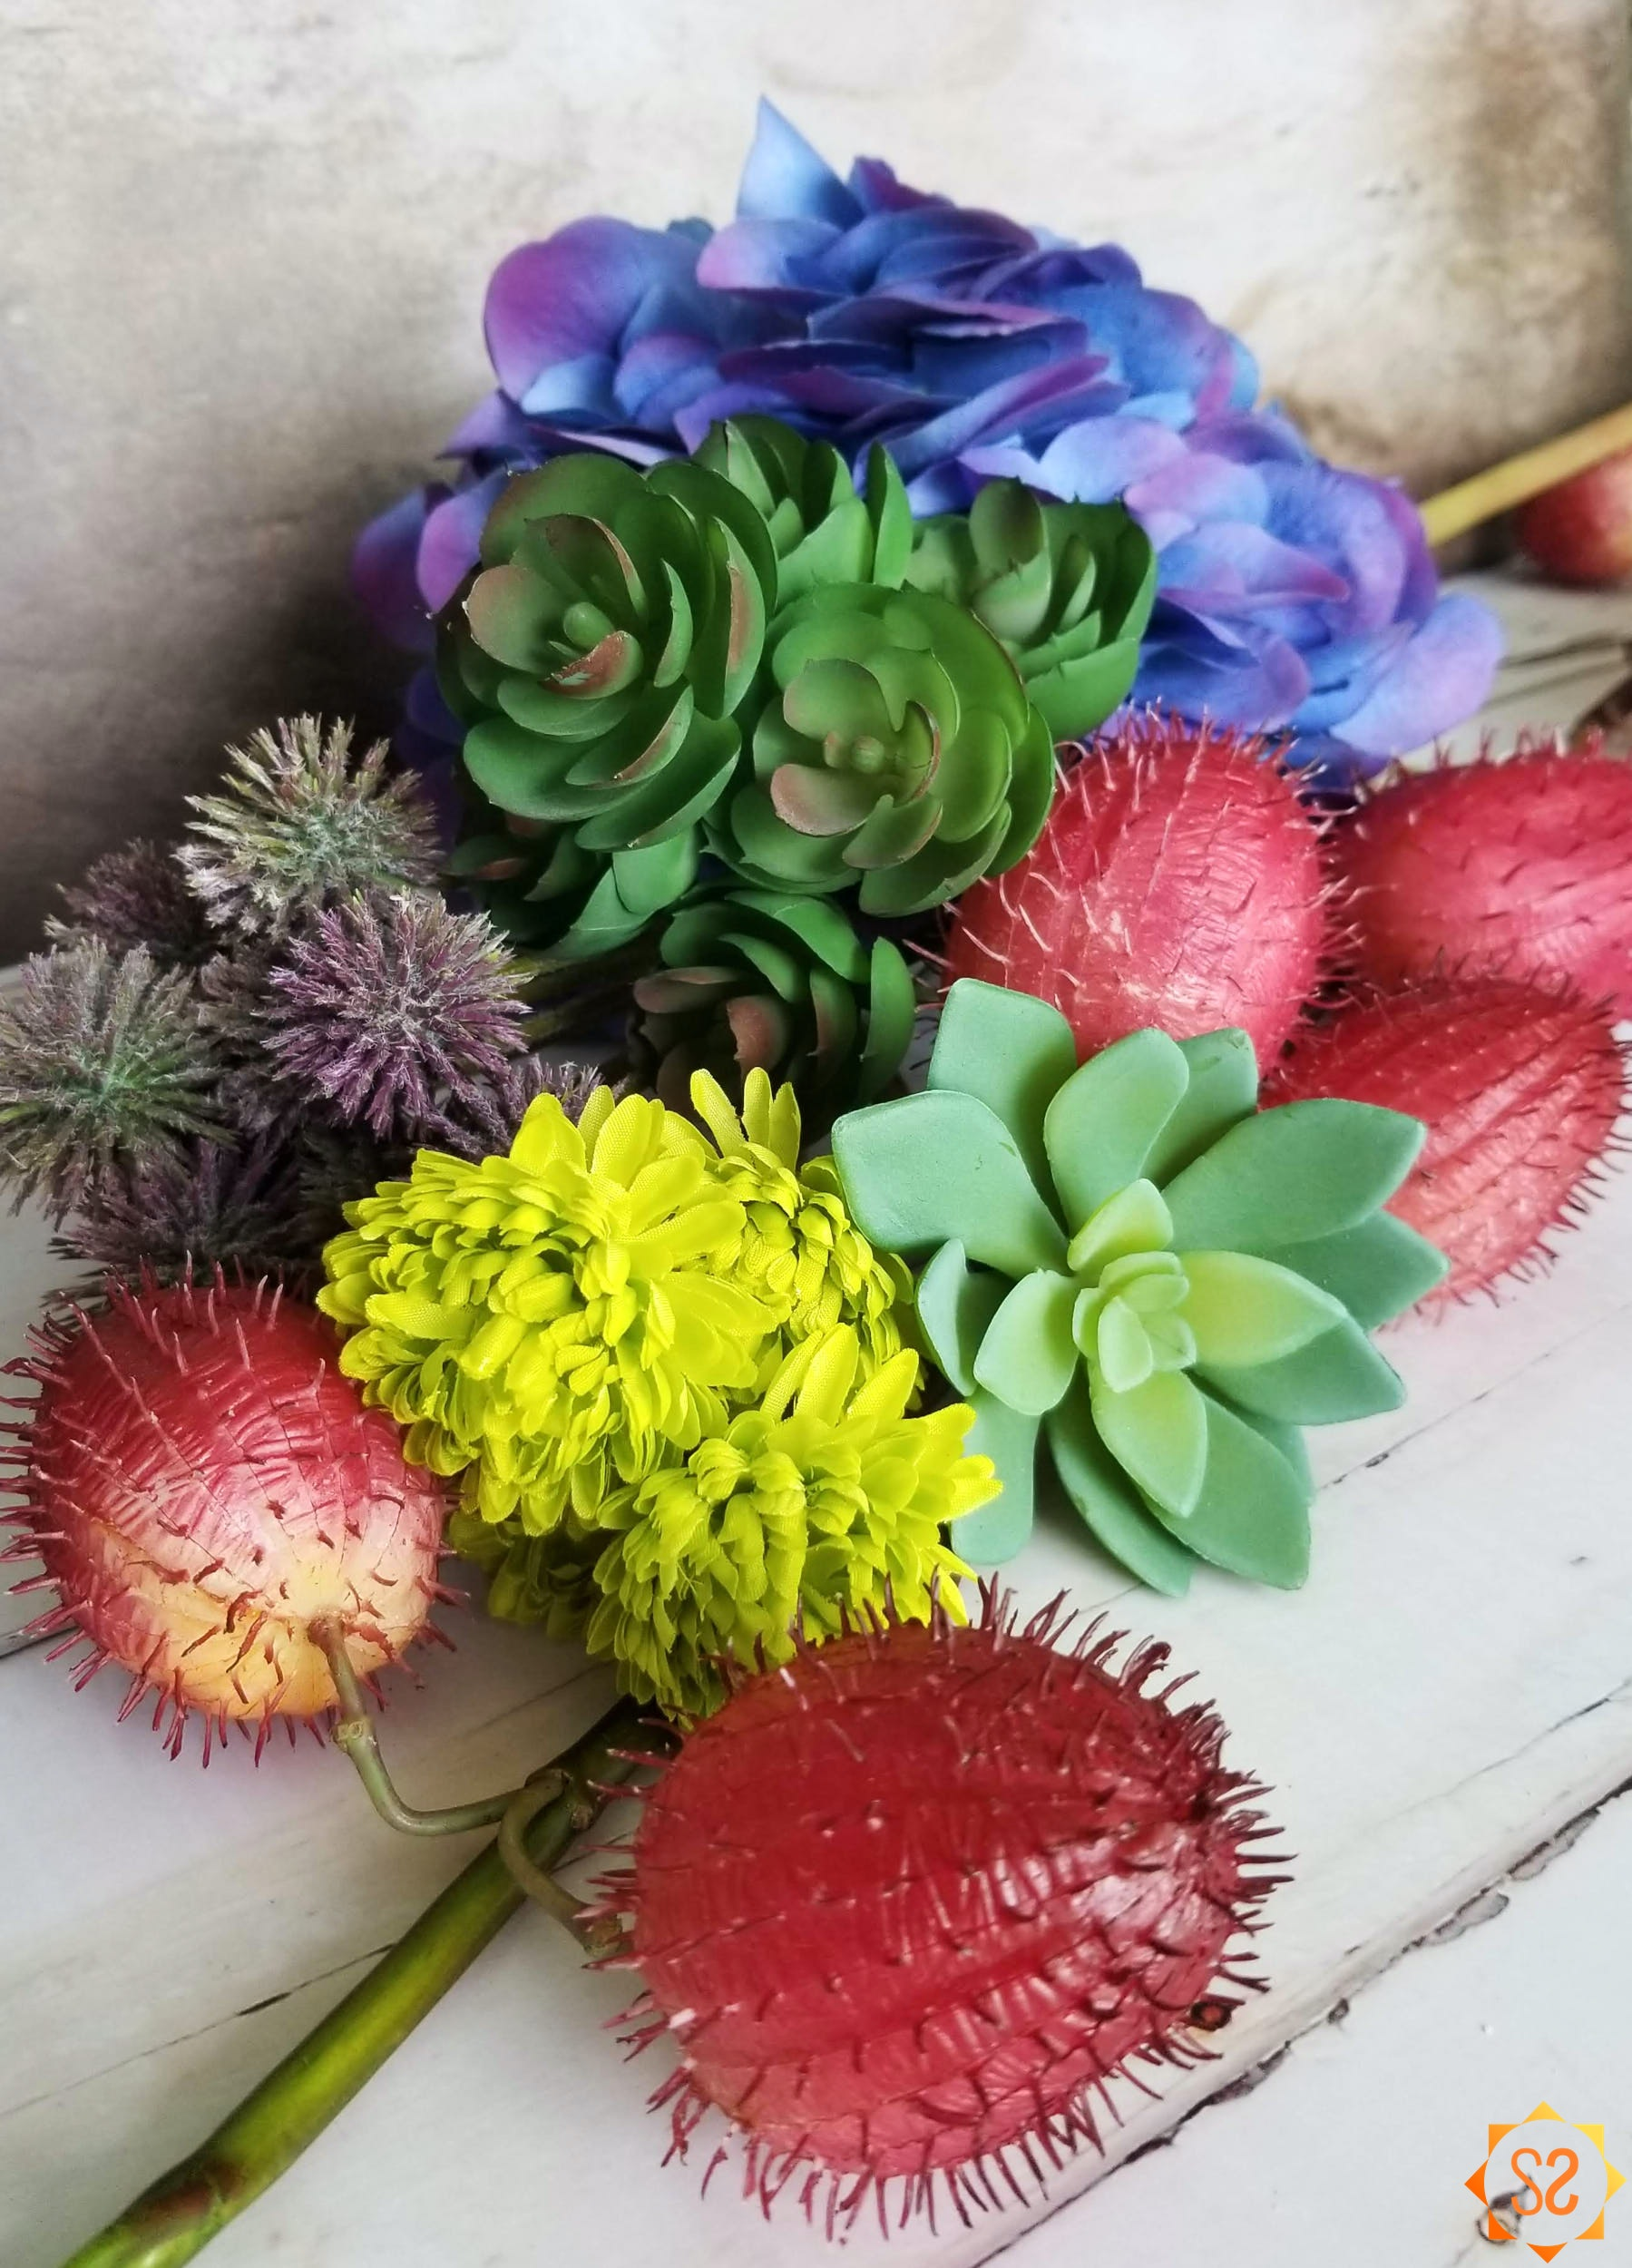 An assortment of exotic flowers